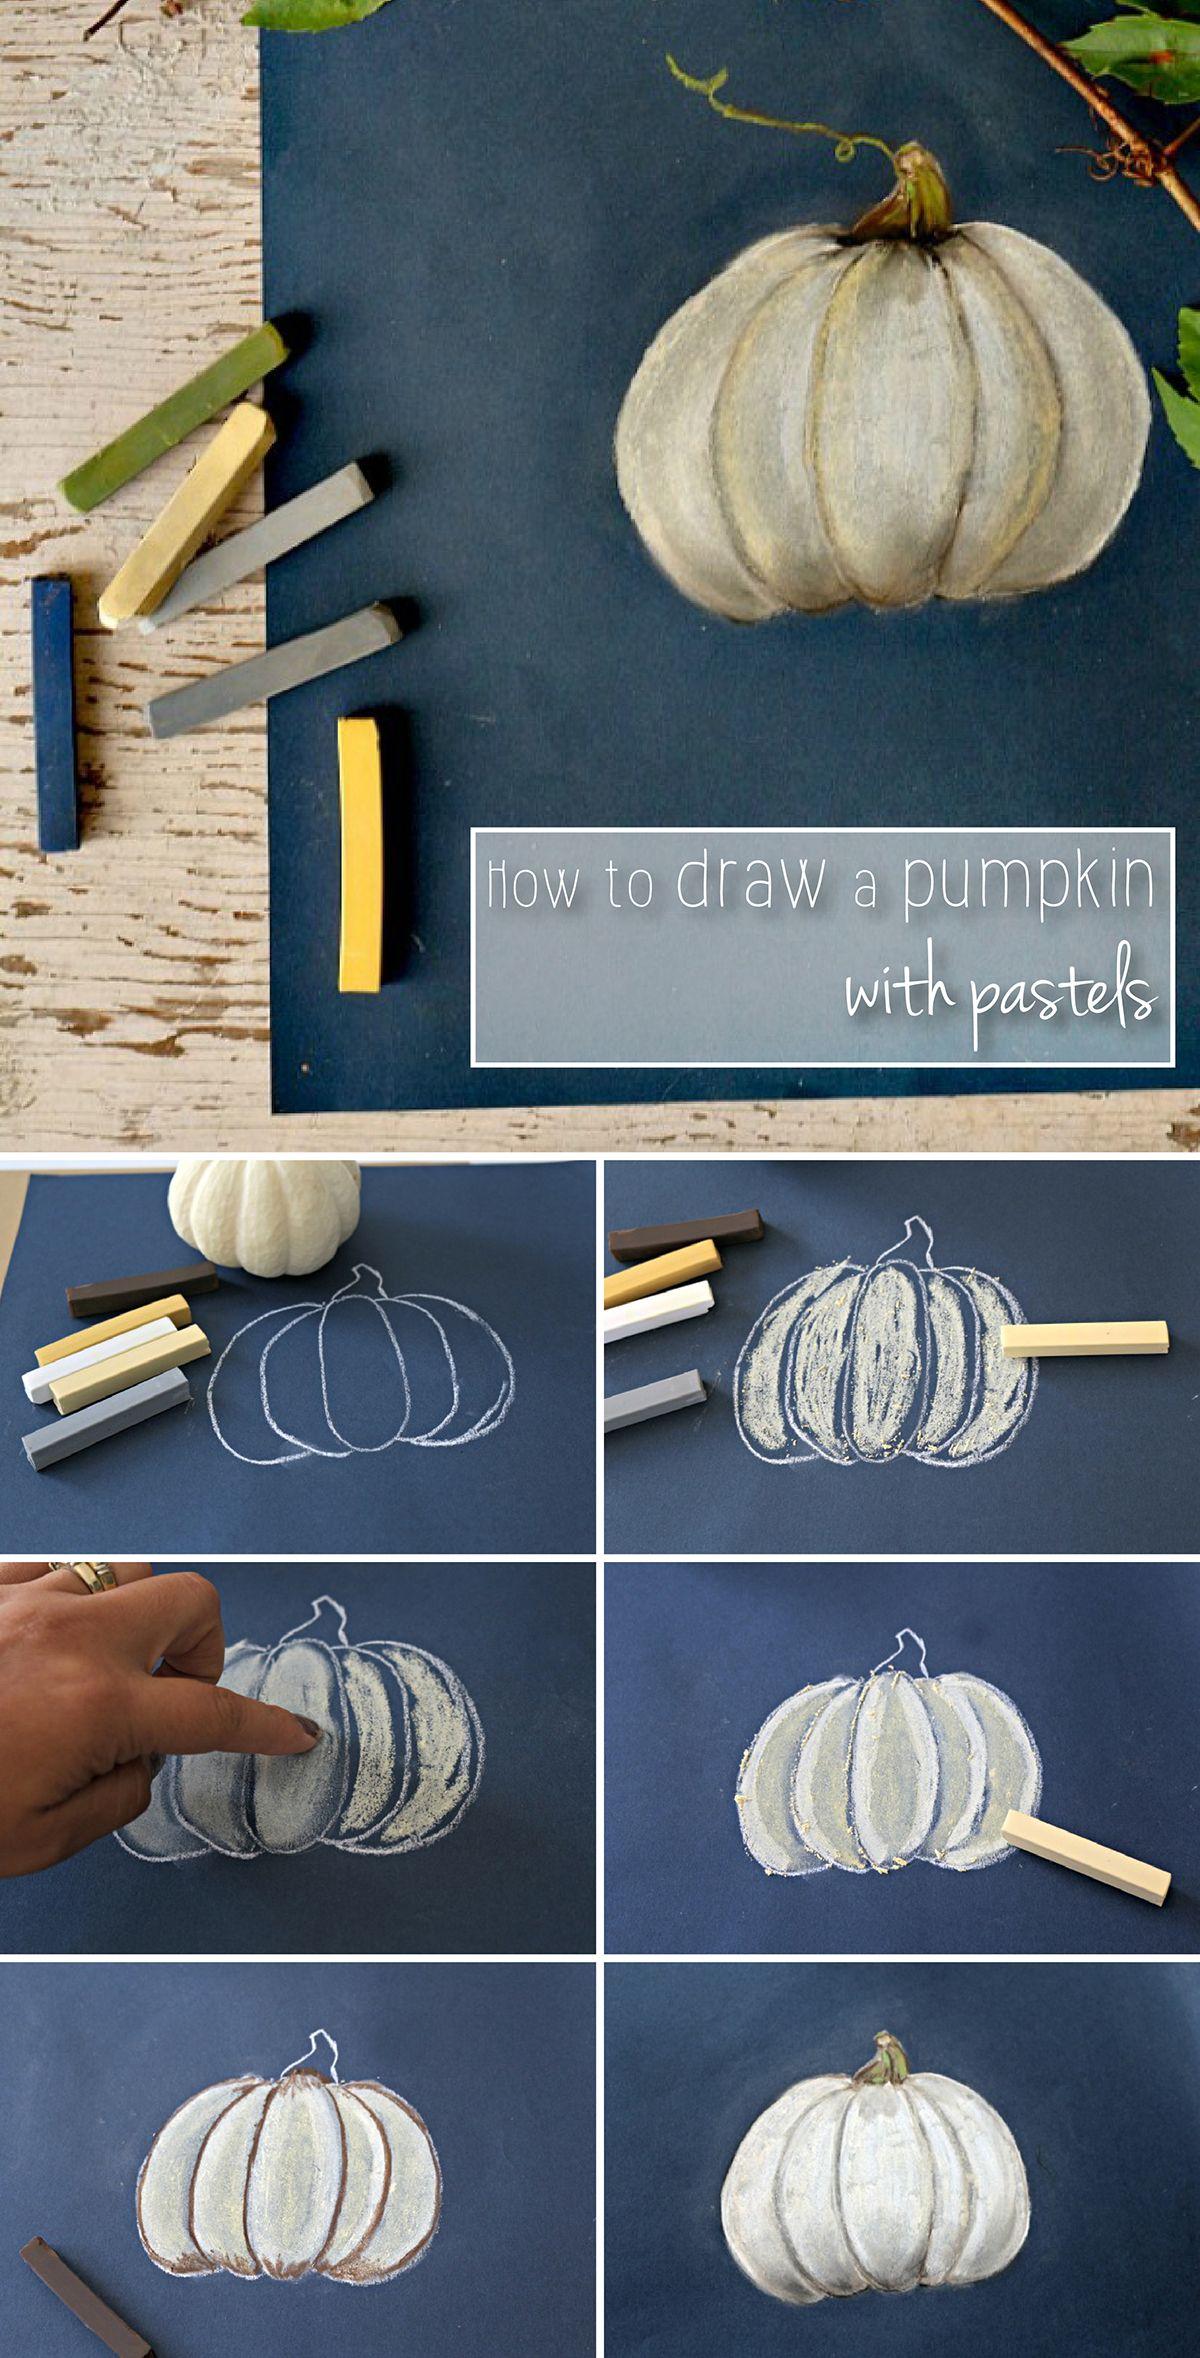 How To Draw A Pumpkin With Pastels